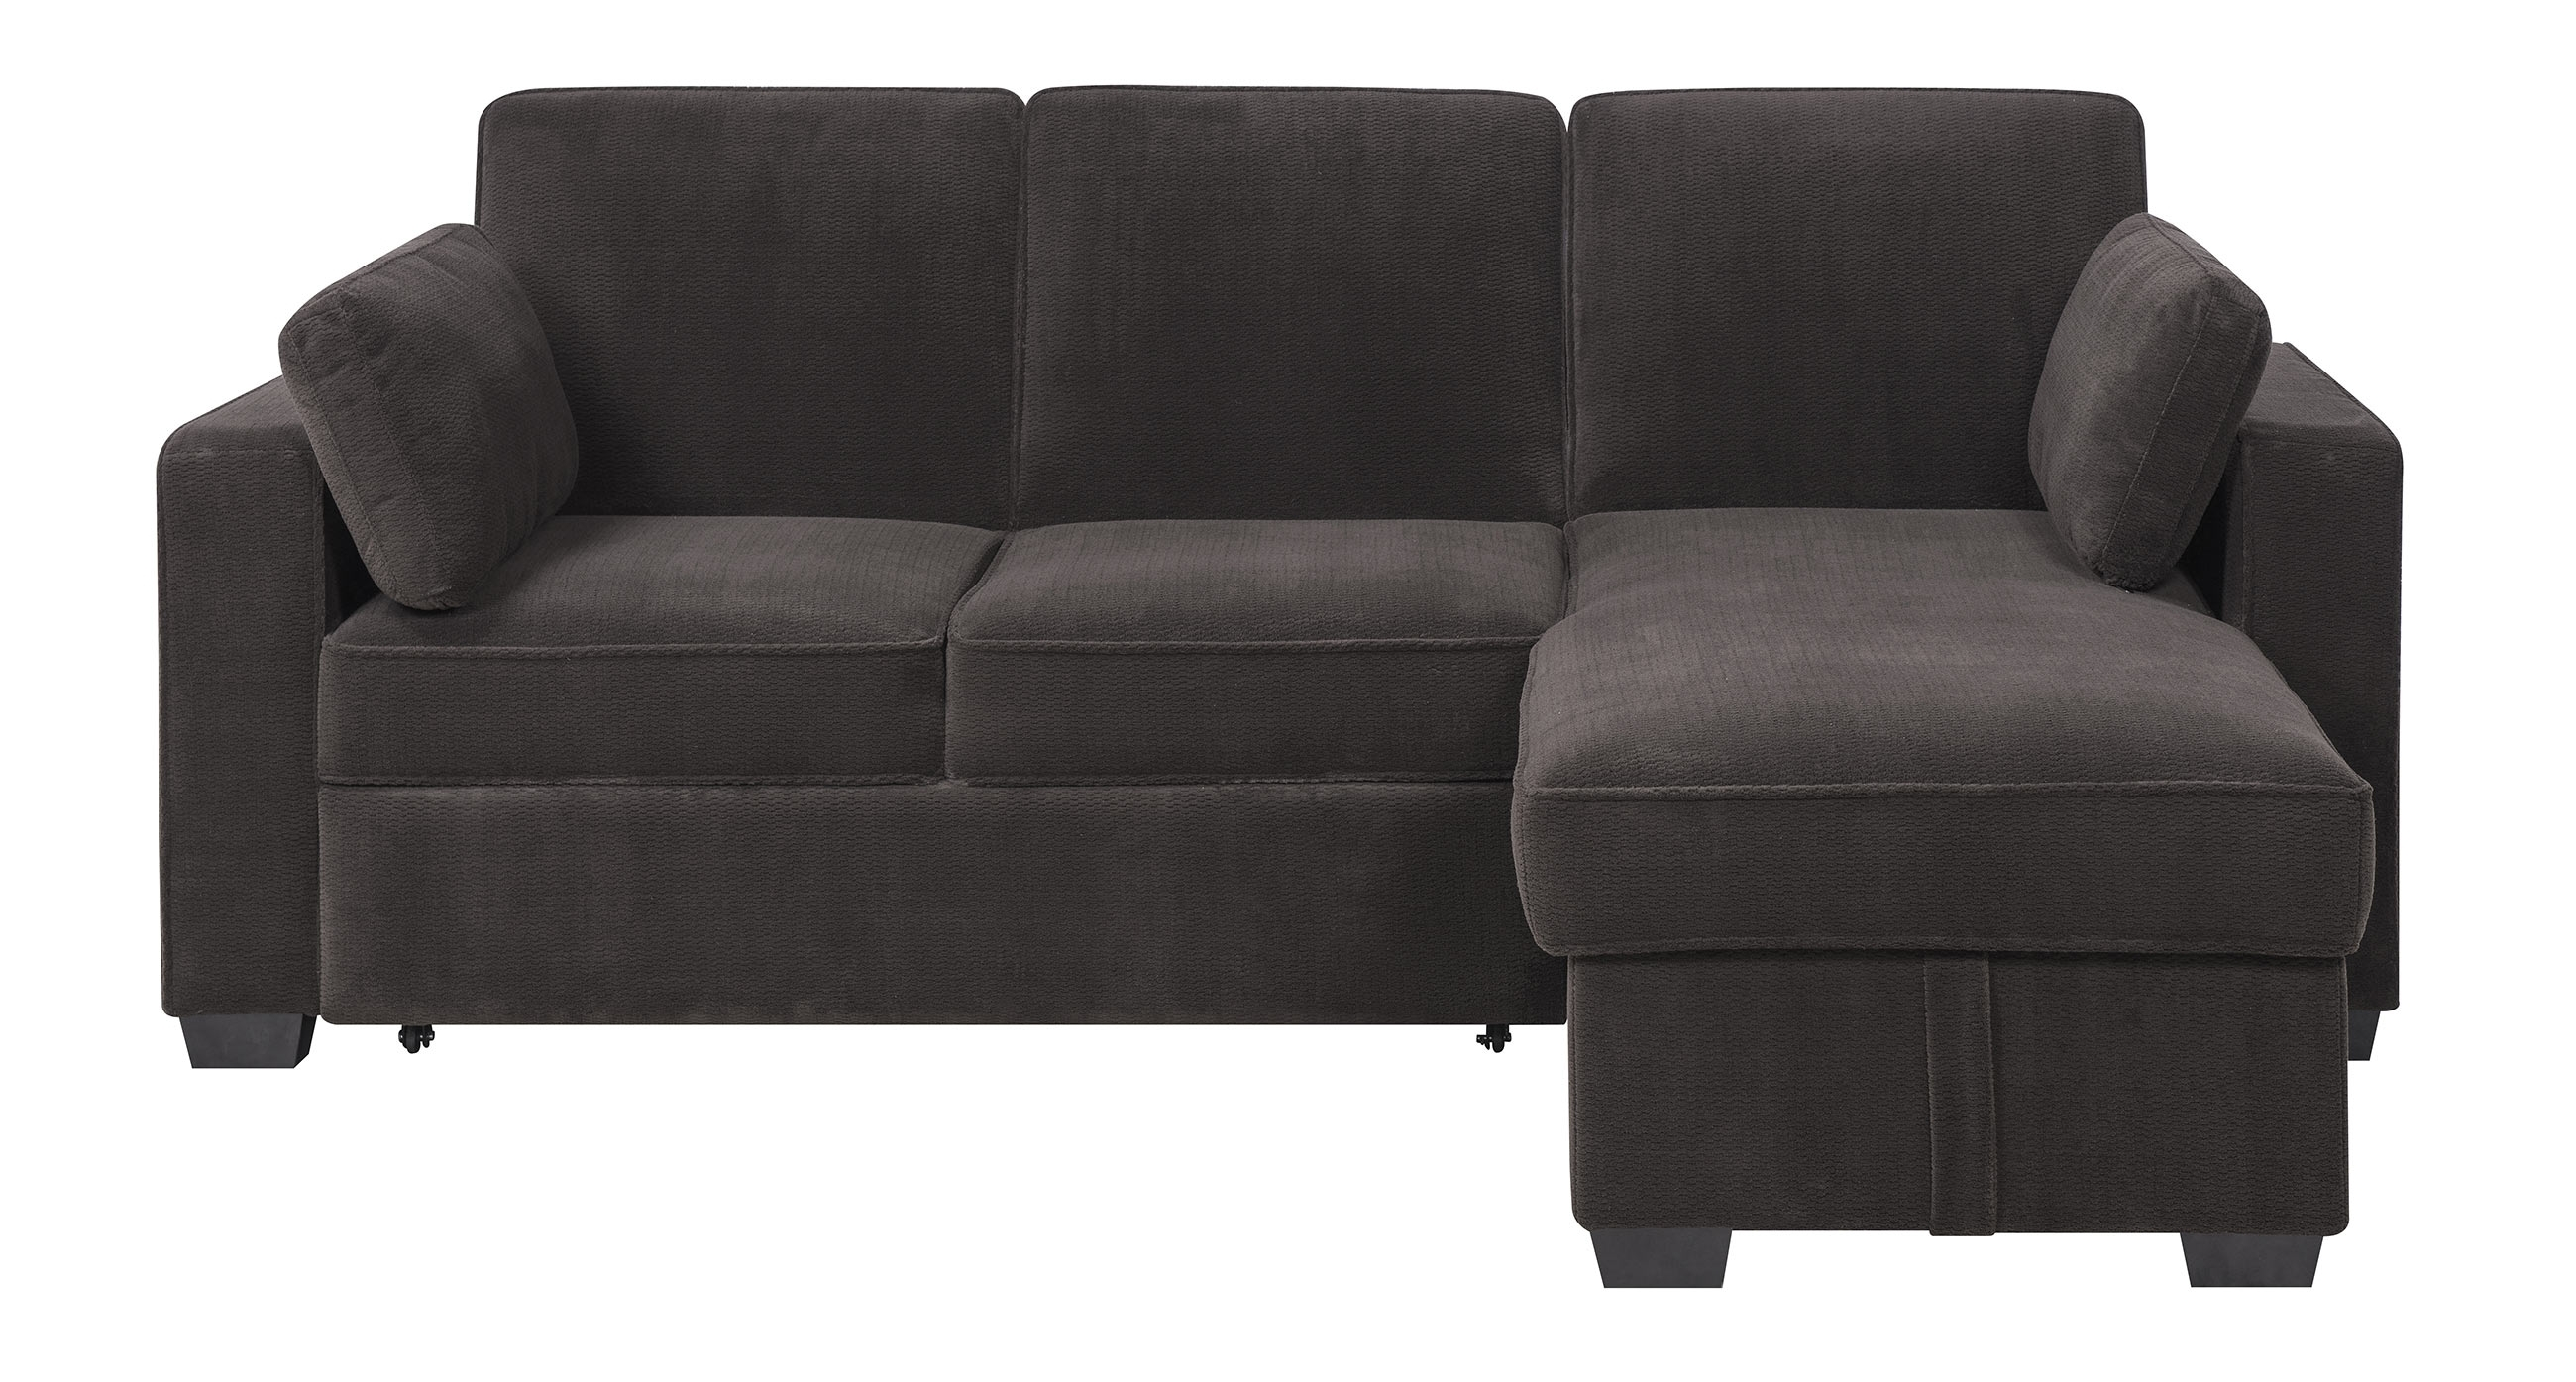 Chaela Sectional Convertible Sofa Dark Greyserta / Lifestyle With Best And Newest Convertible Sofas (View 2 of 20)